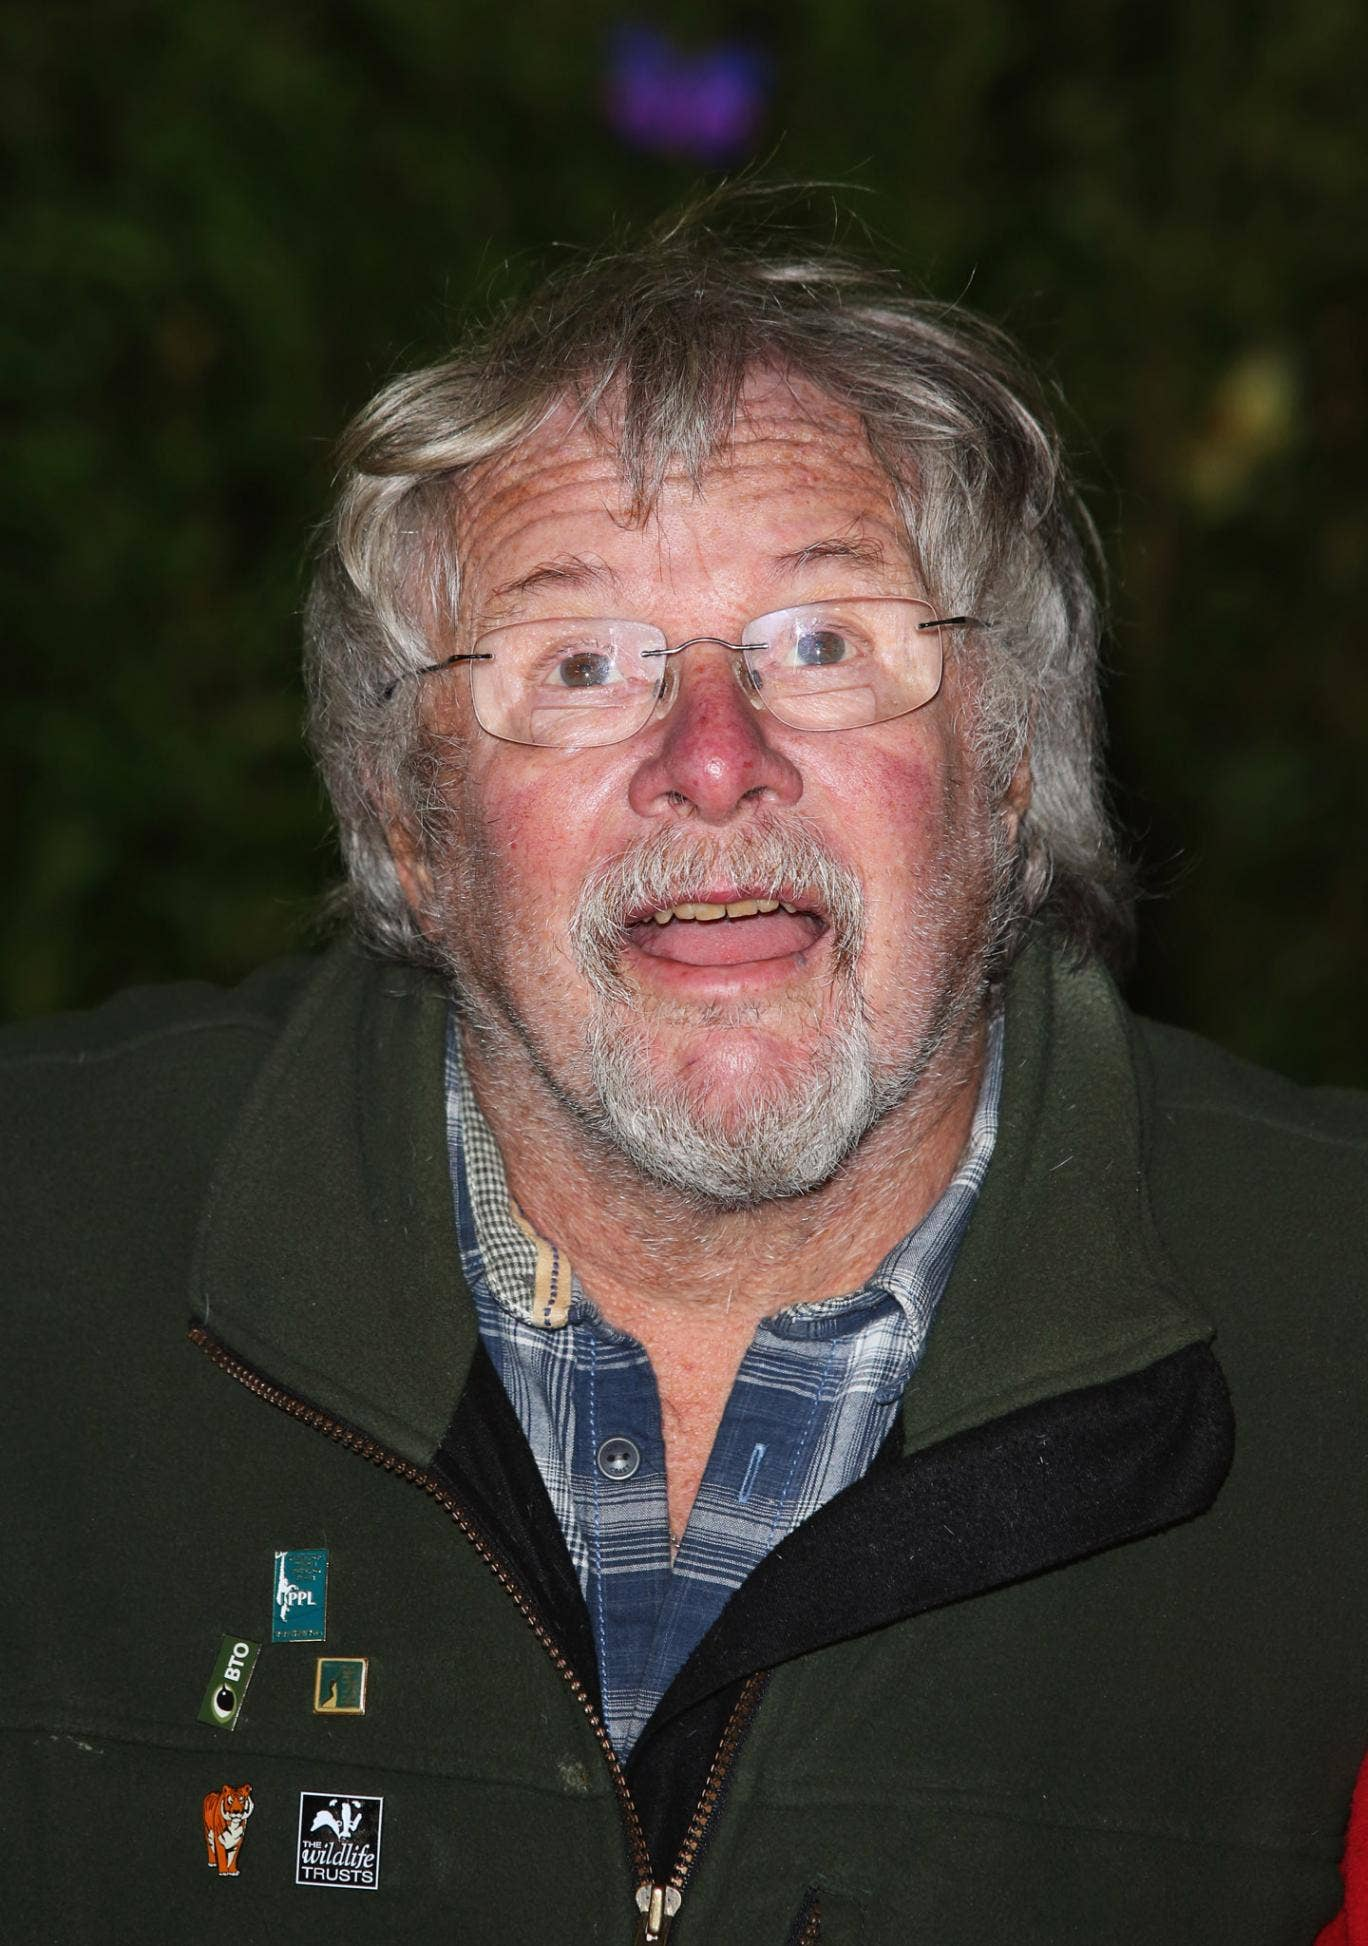 Bill Oddie is to question HSBC about connections to deforestation in Borneo